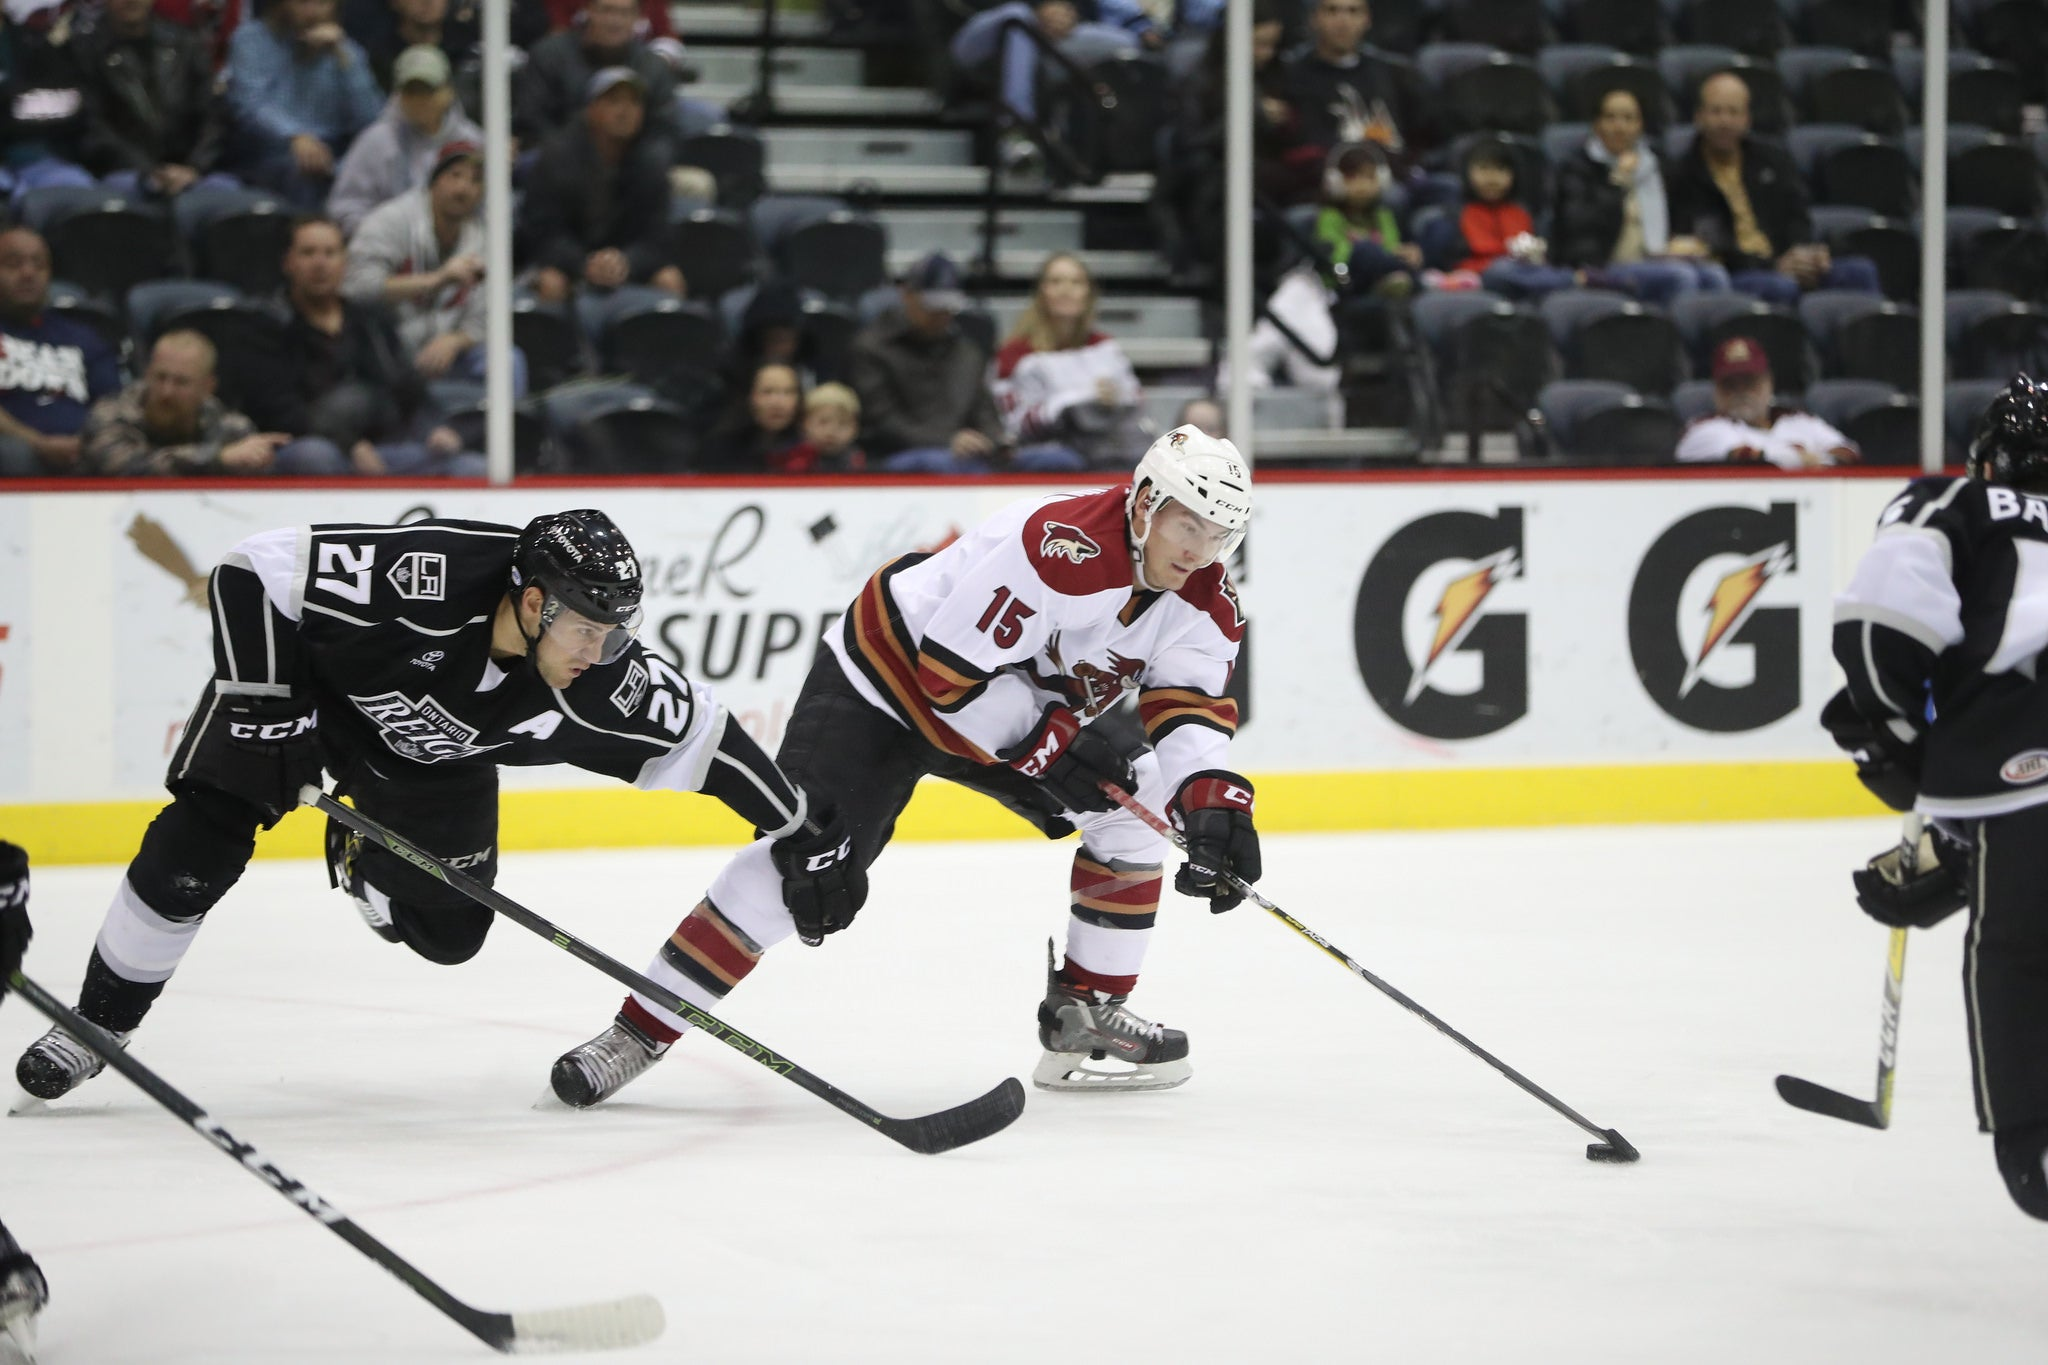 Live Blog and Broadcast: Reign at Roadrunners